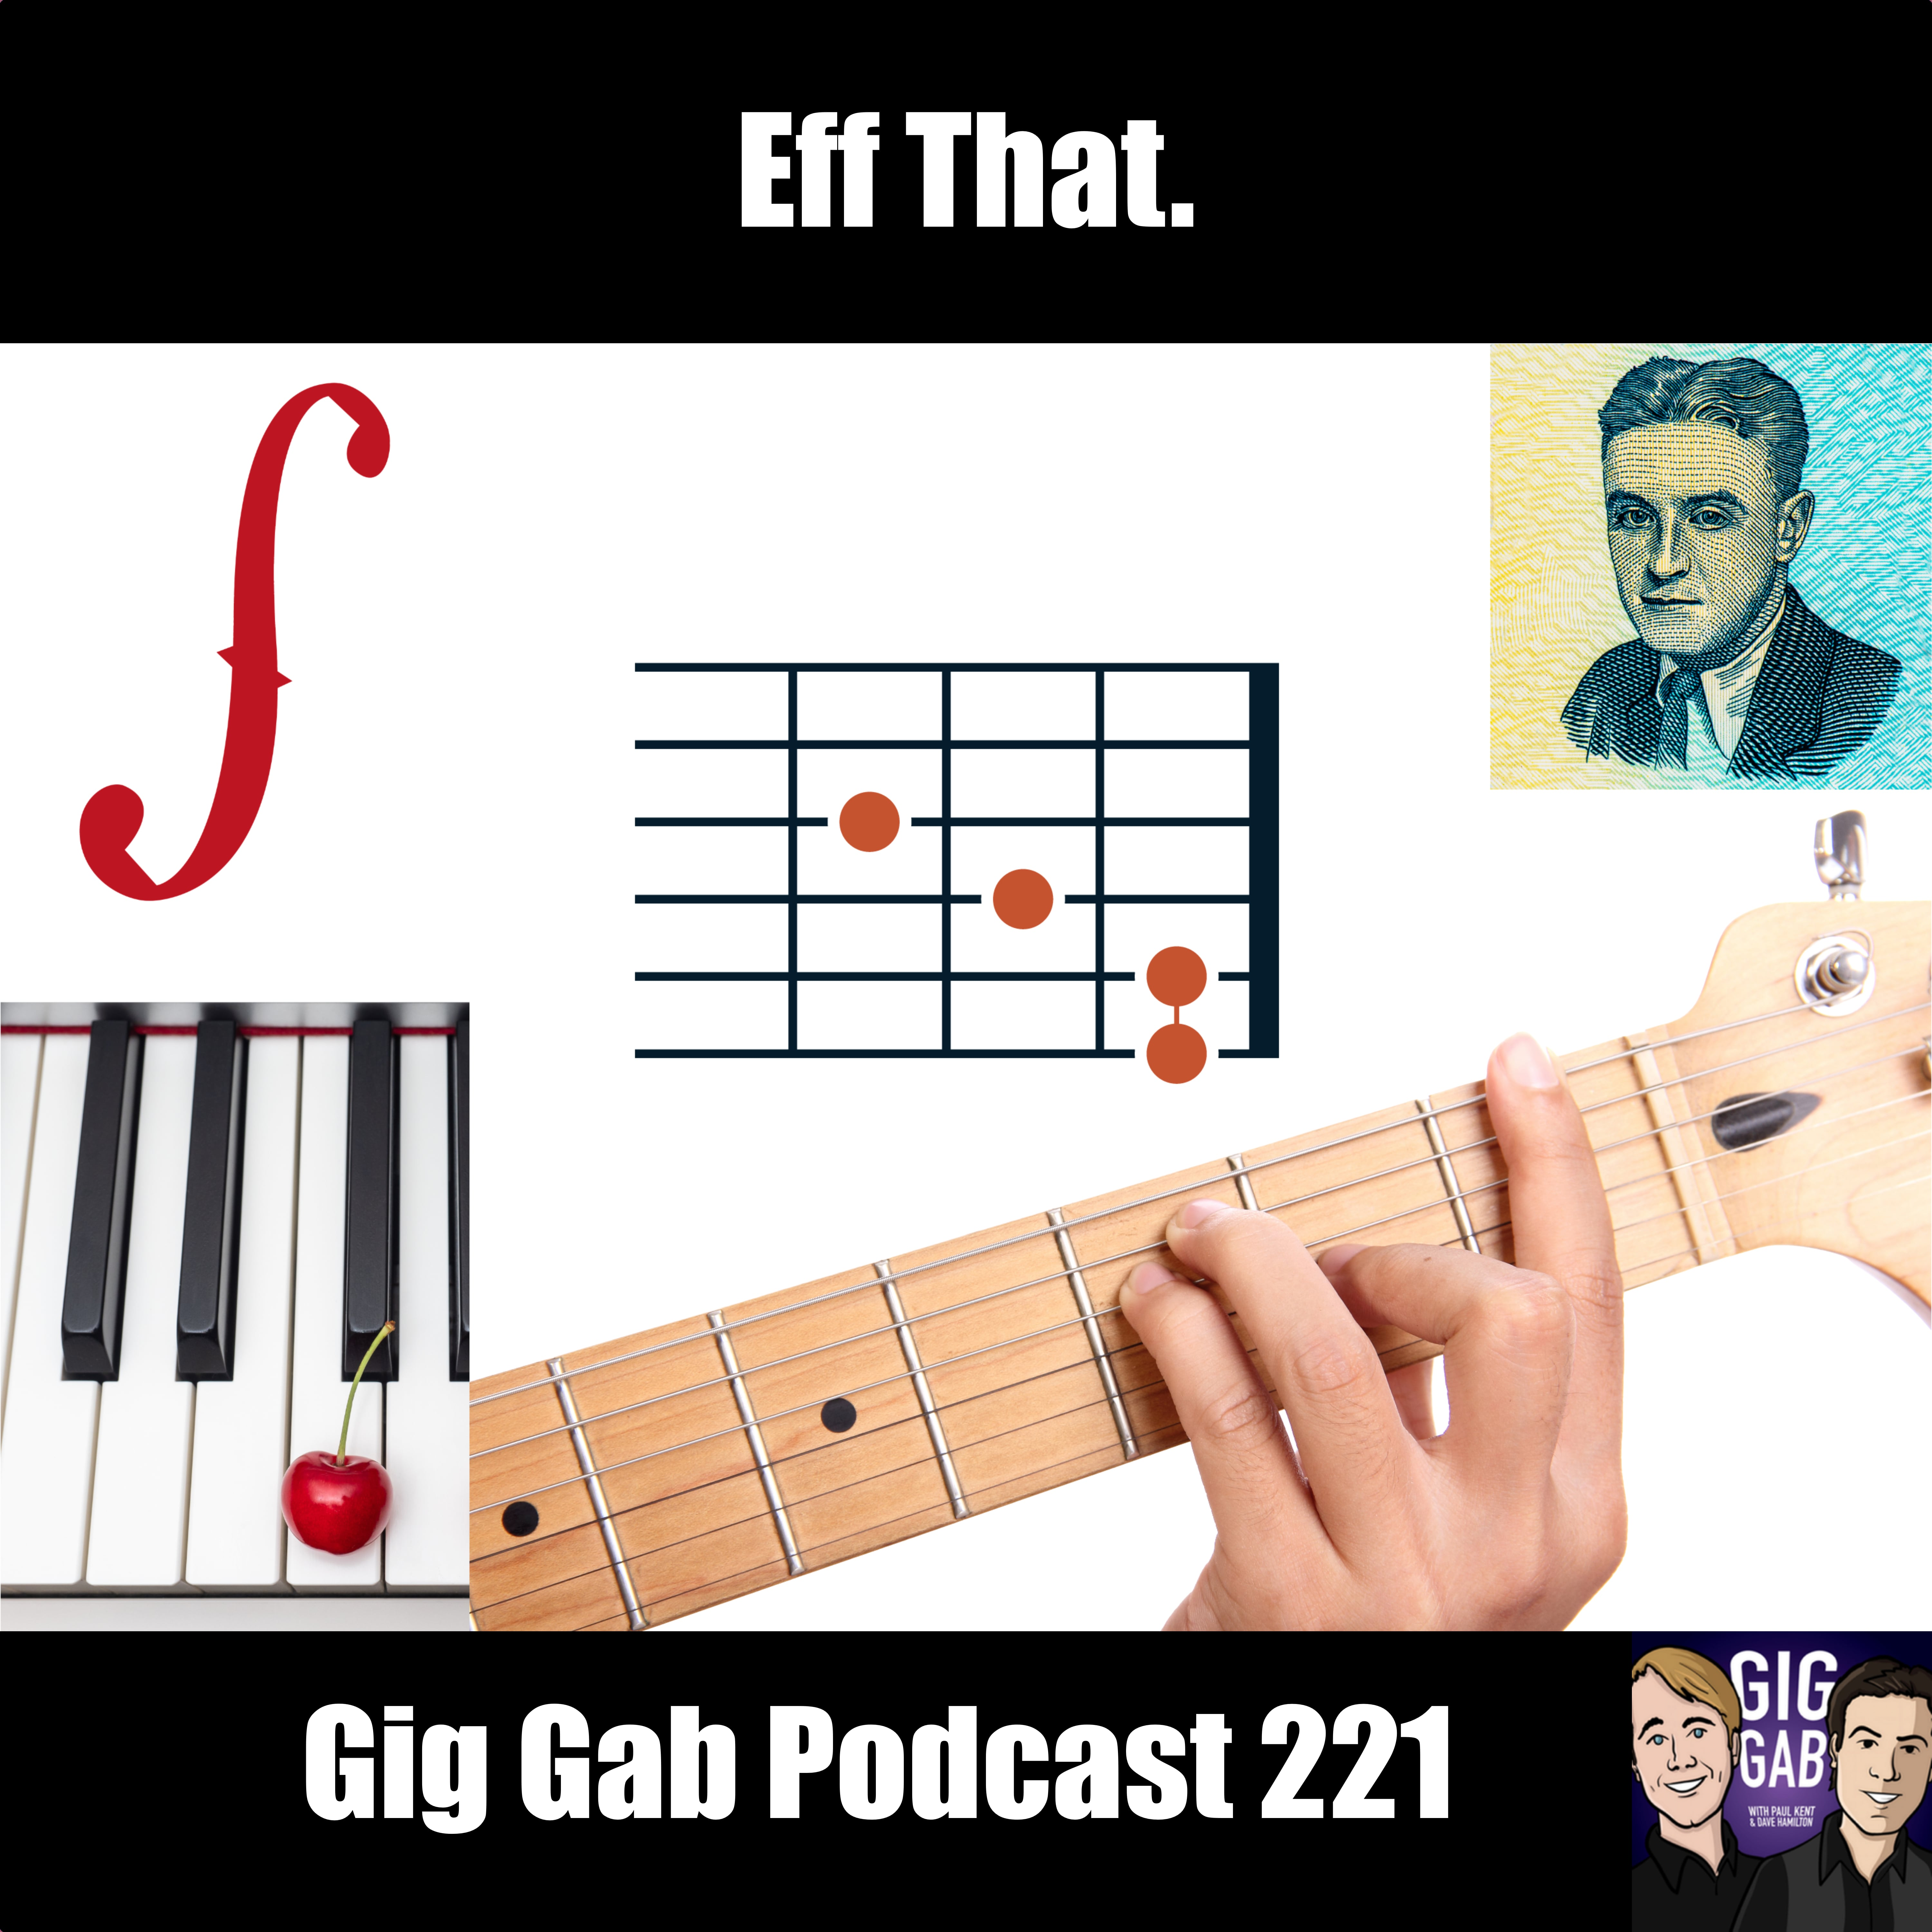 Eff That – Gig Gab Podcast 221